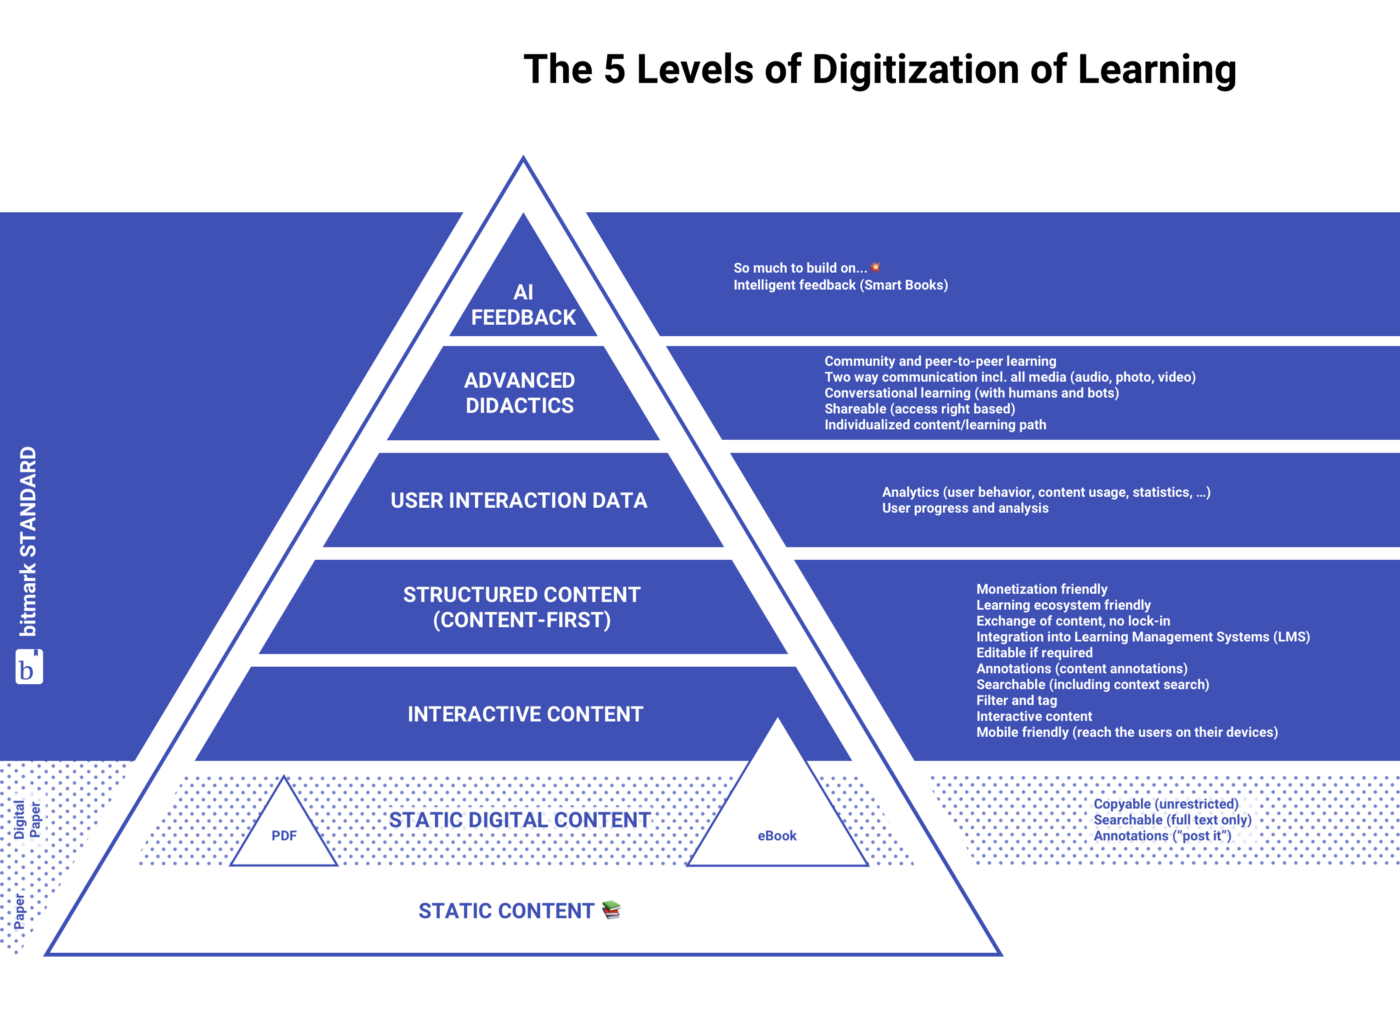 Digitalization of learning pyramid. bitmark is the foundation for the five levels of digitization of learning.